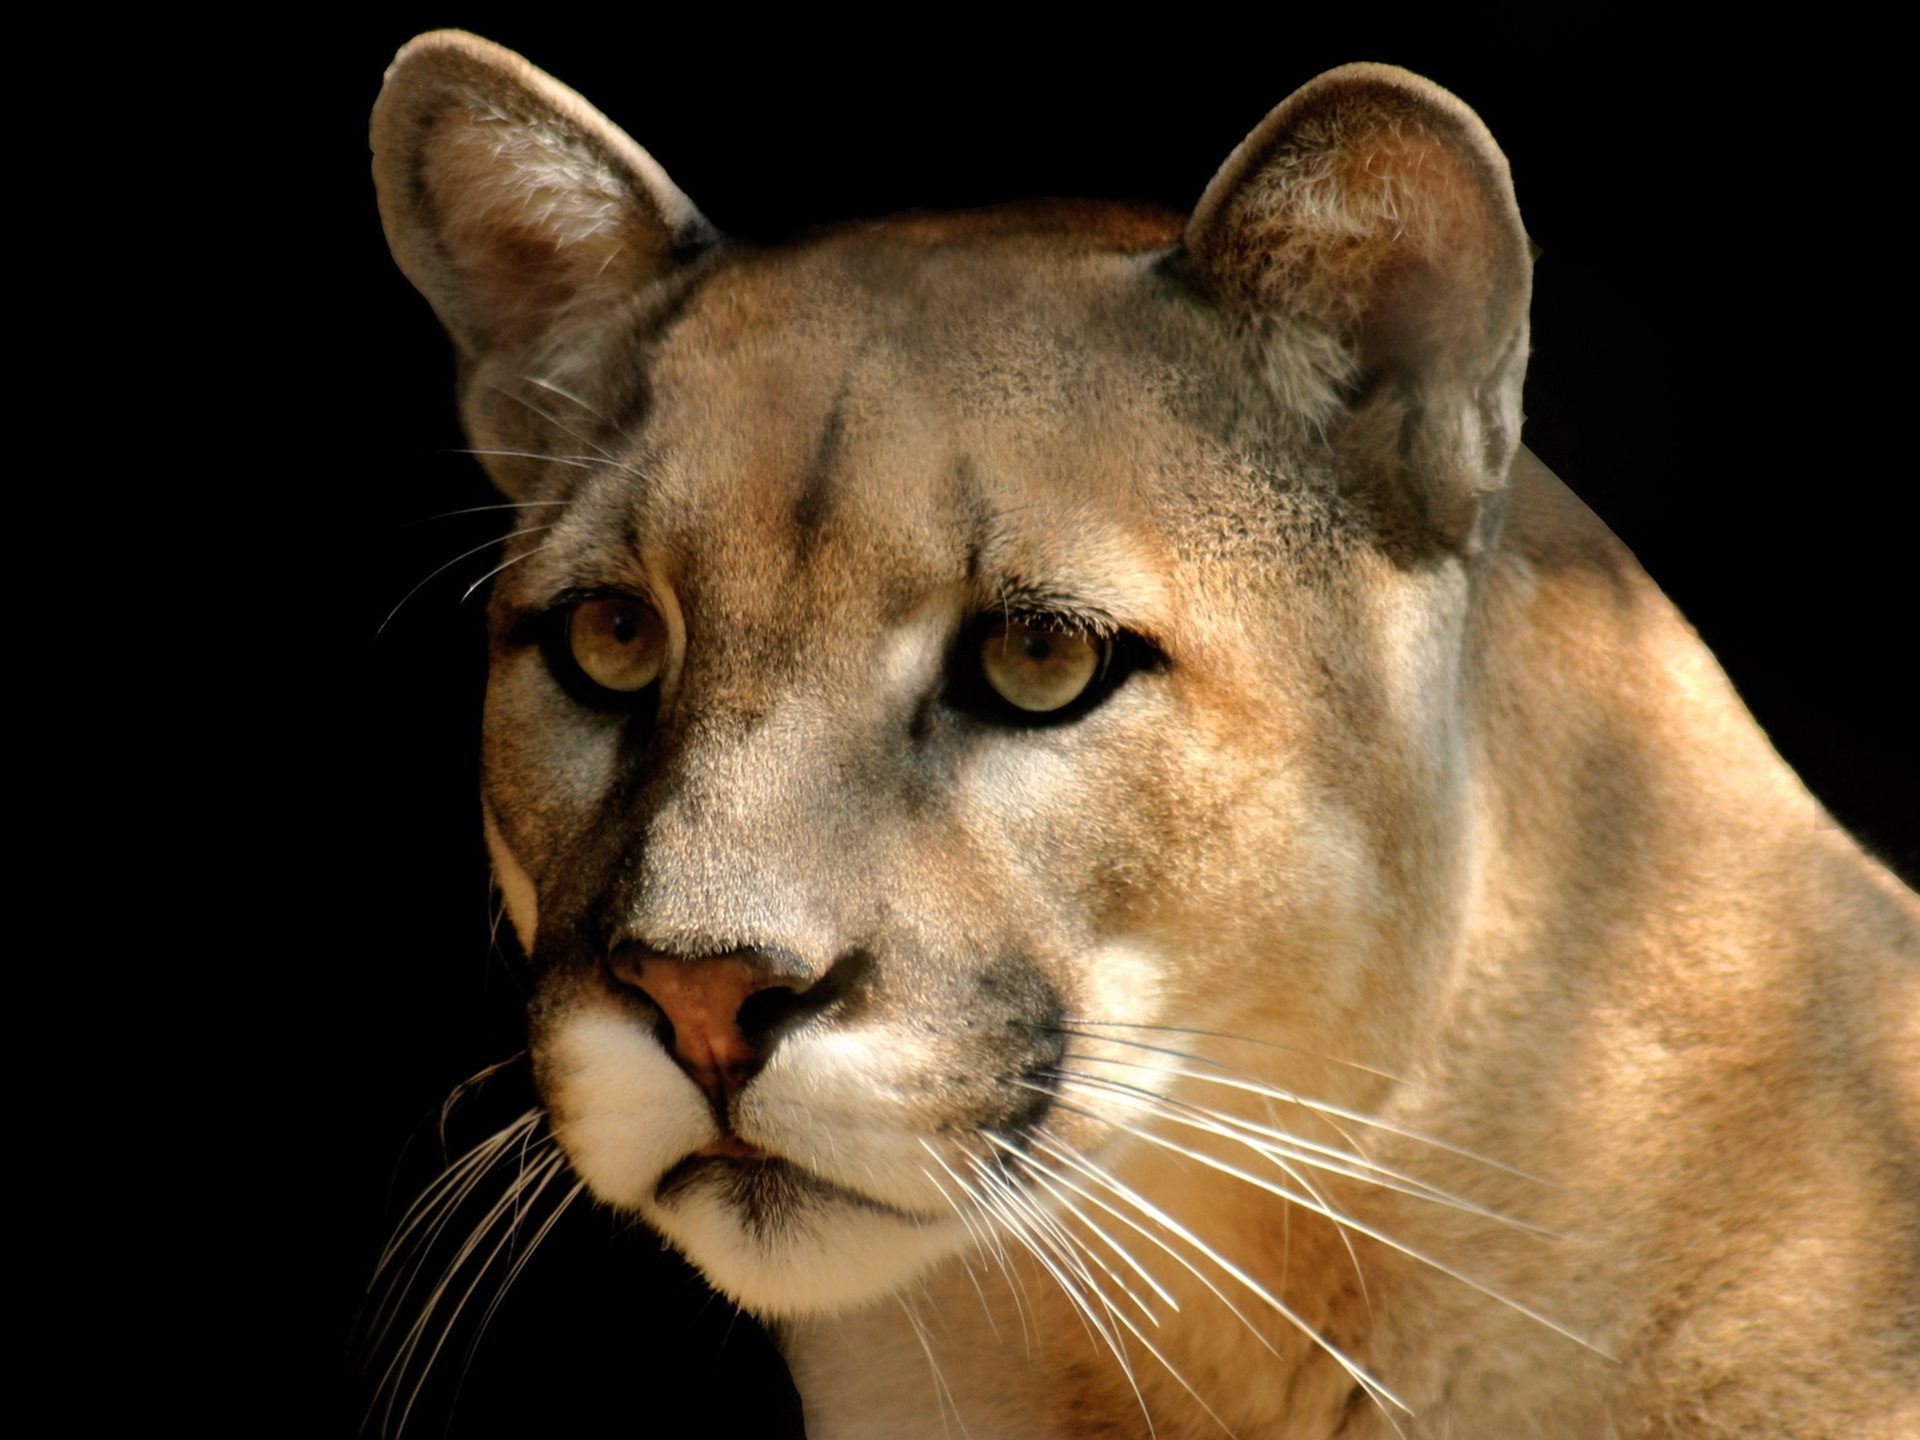 cougar puma concolor animal hd wallpaper image